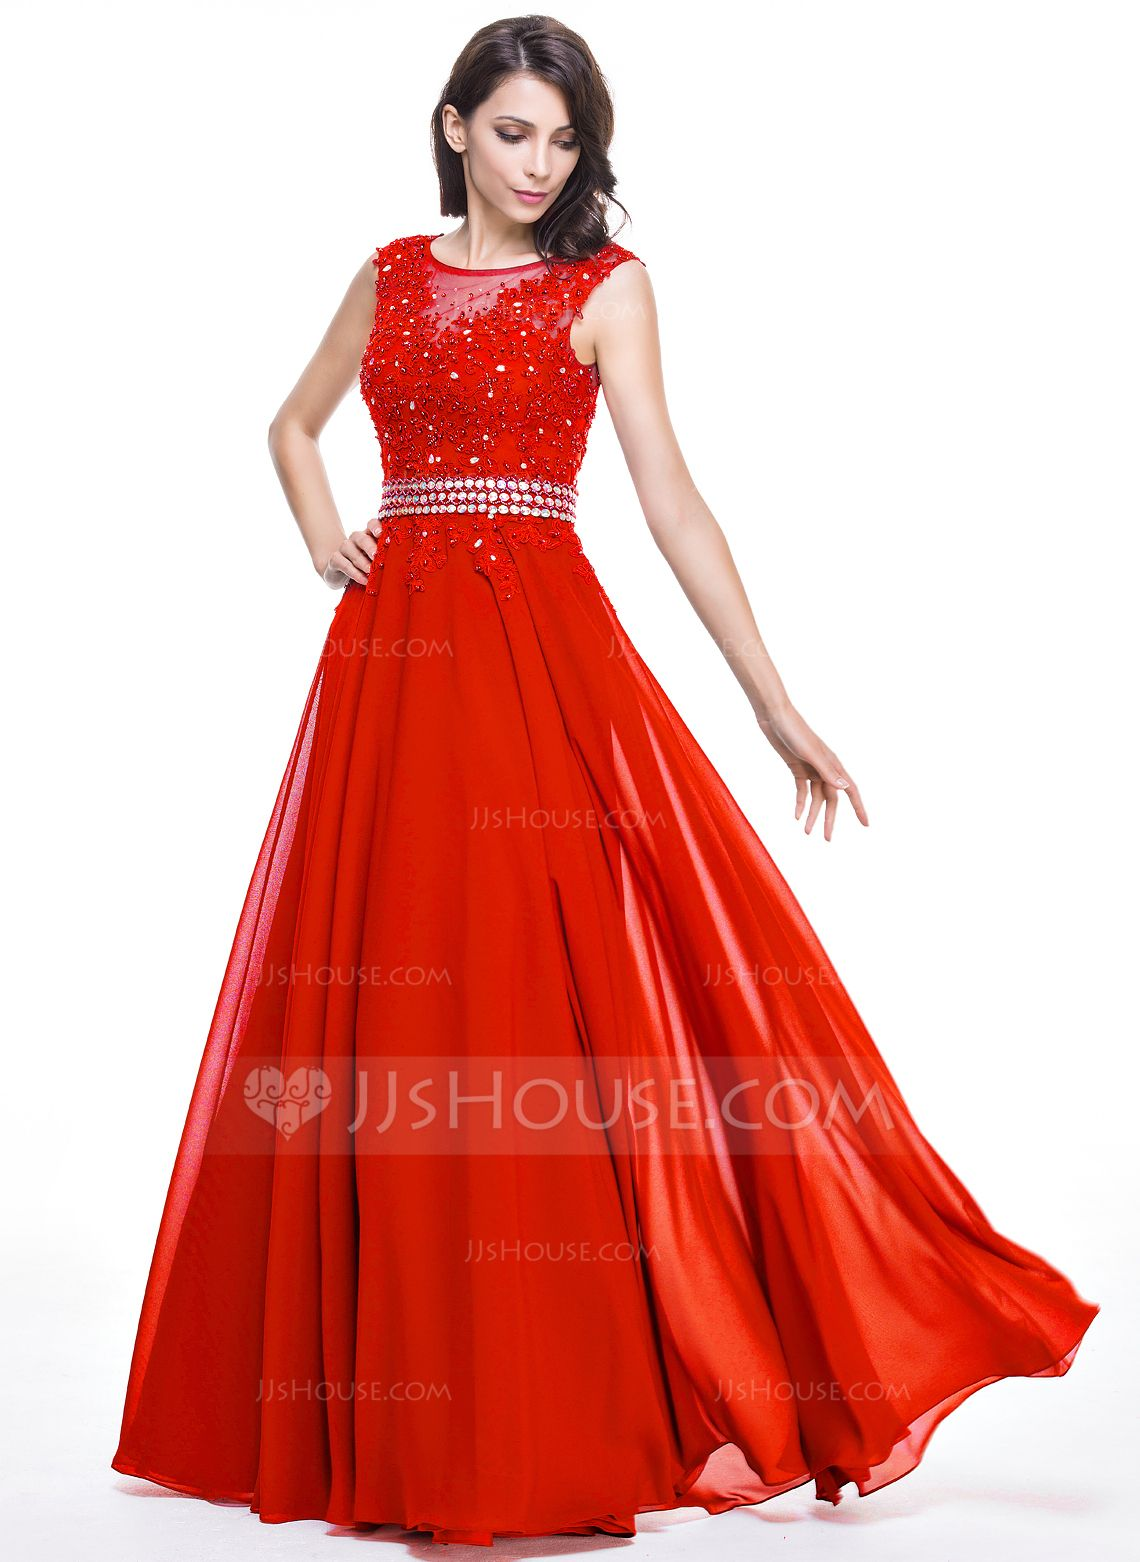 A-Line Princess Scoop Neck Floor-Length Chiffon Evening Dress With Beading  Appliques Lace Sequins (017056133) - JJsHouse 50aaa018aca1